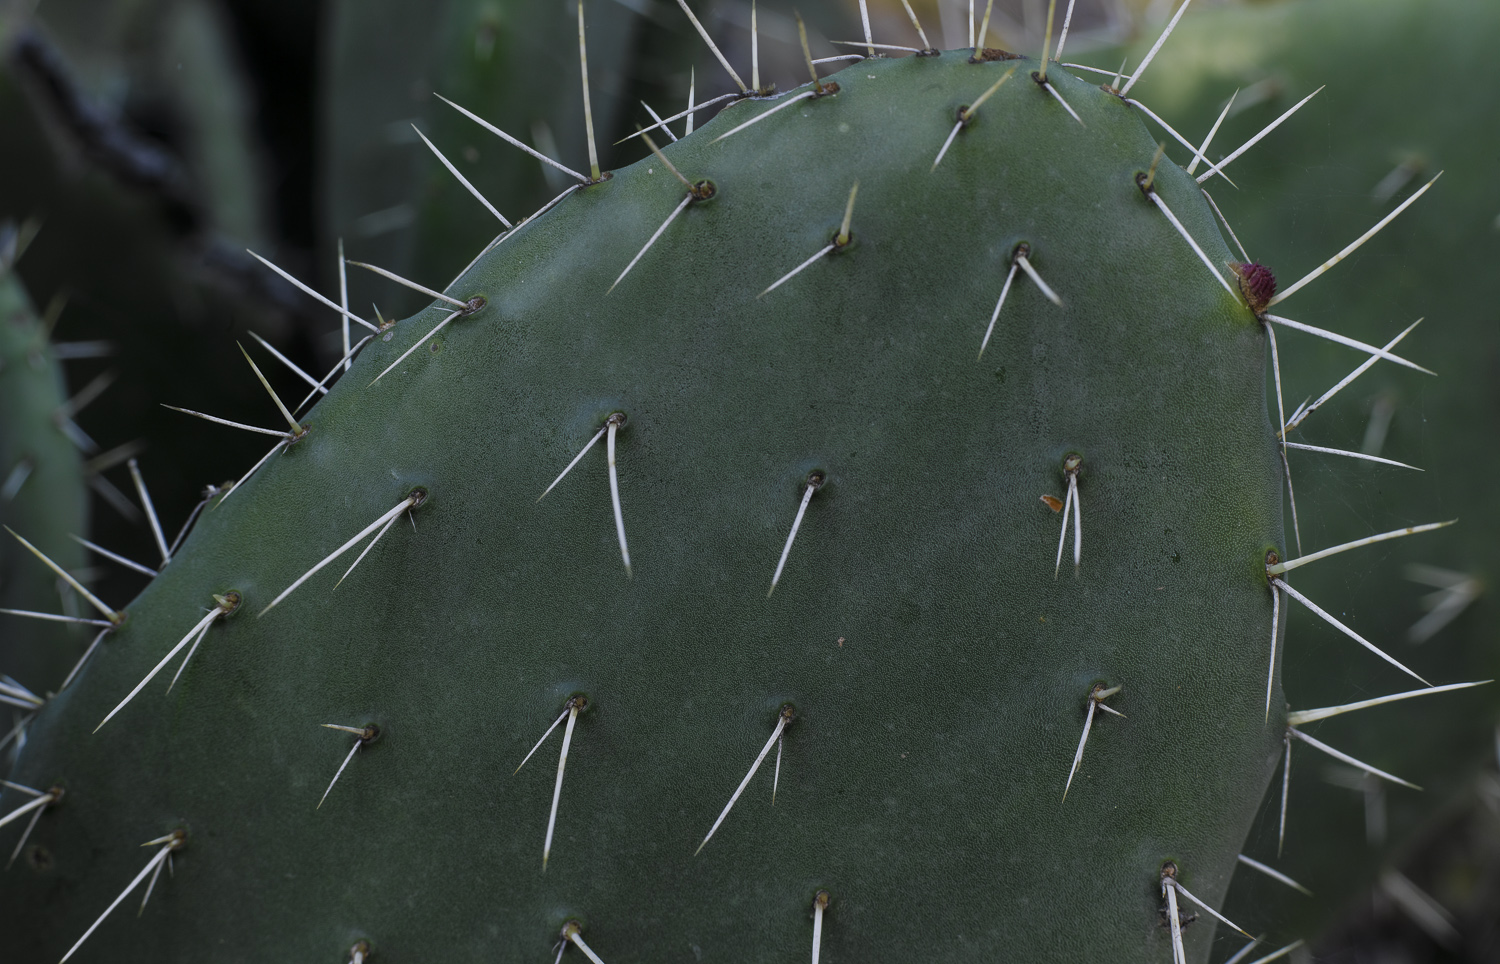 Cactus - Bet Guvrin, 2009